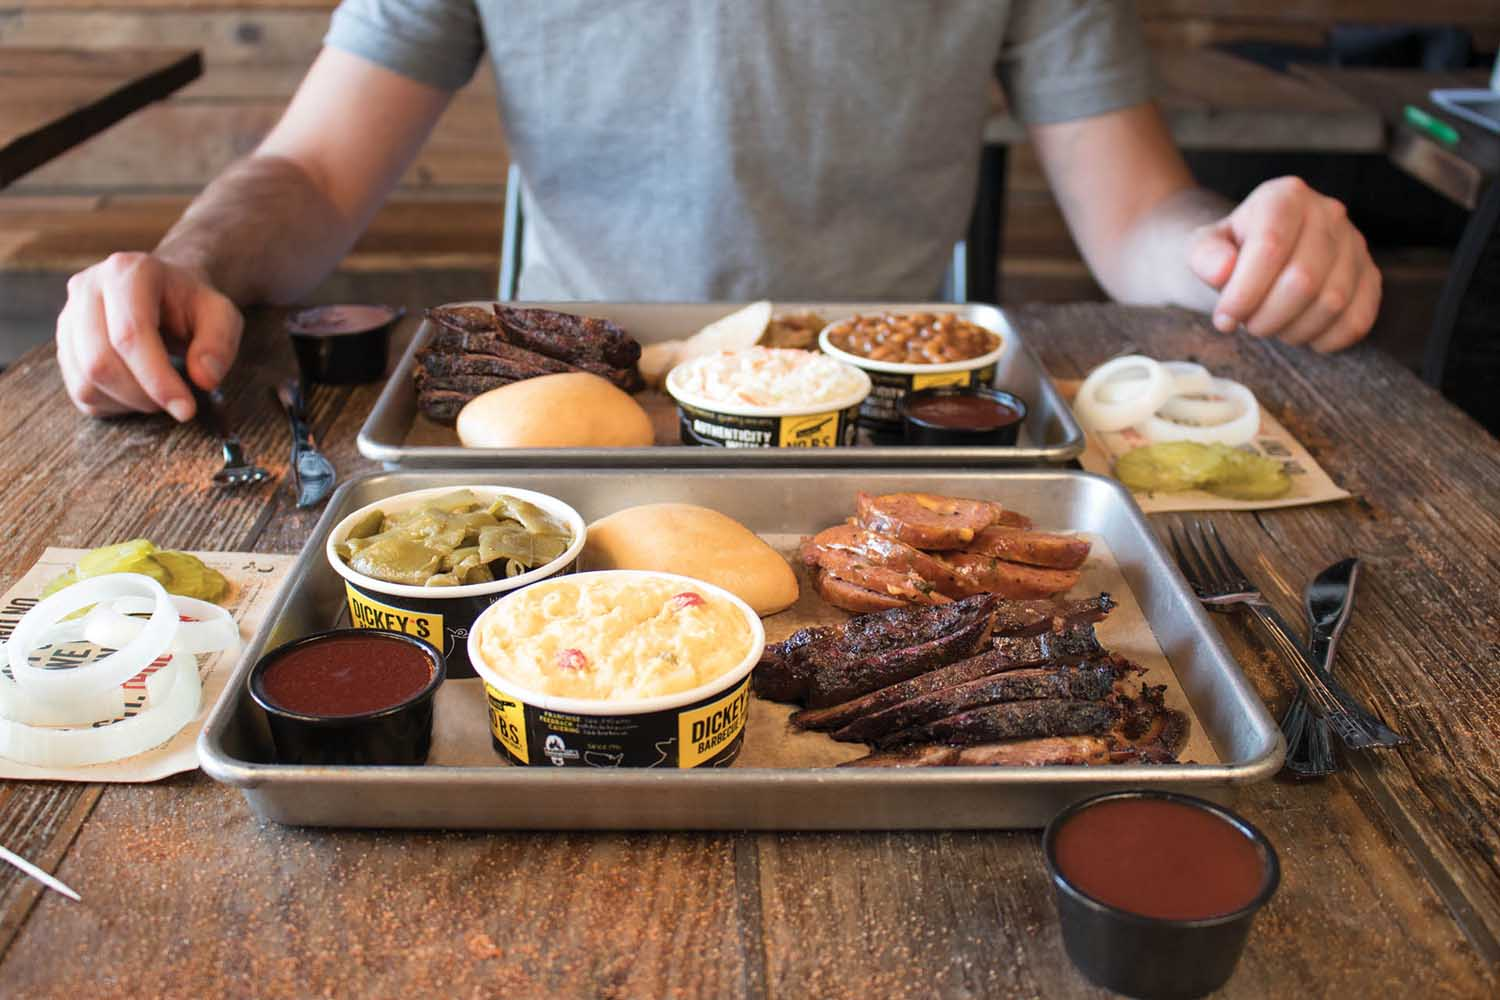 Dickey's Barbecue Pit Gains Operational Insight across 500 Stores with Advanced Big Data Analytics in the Cloud